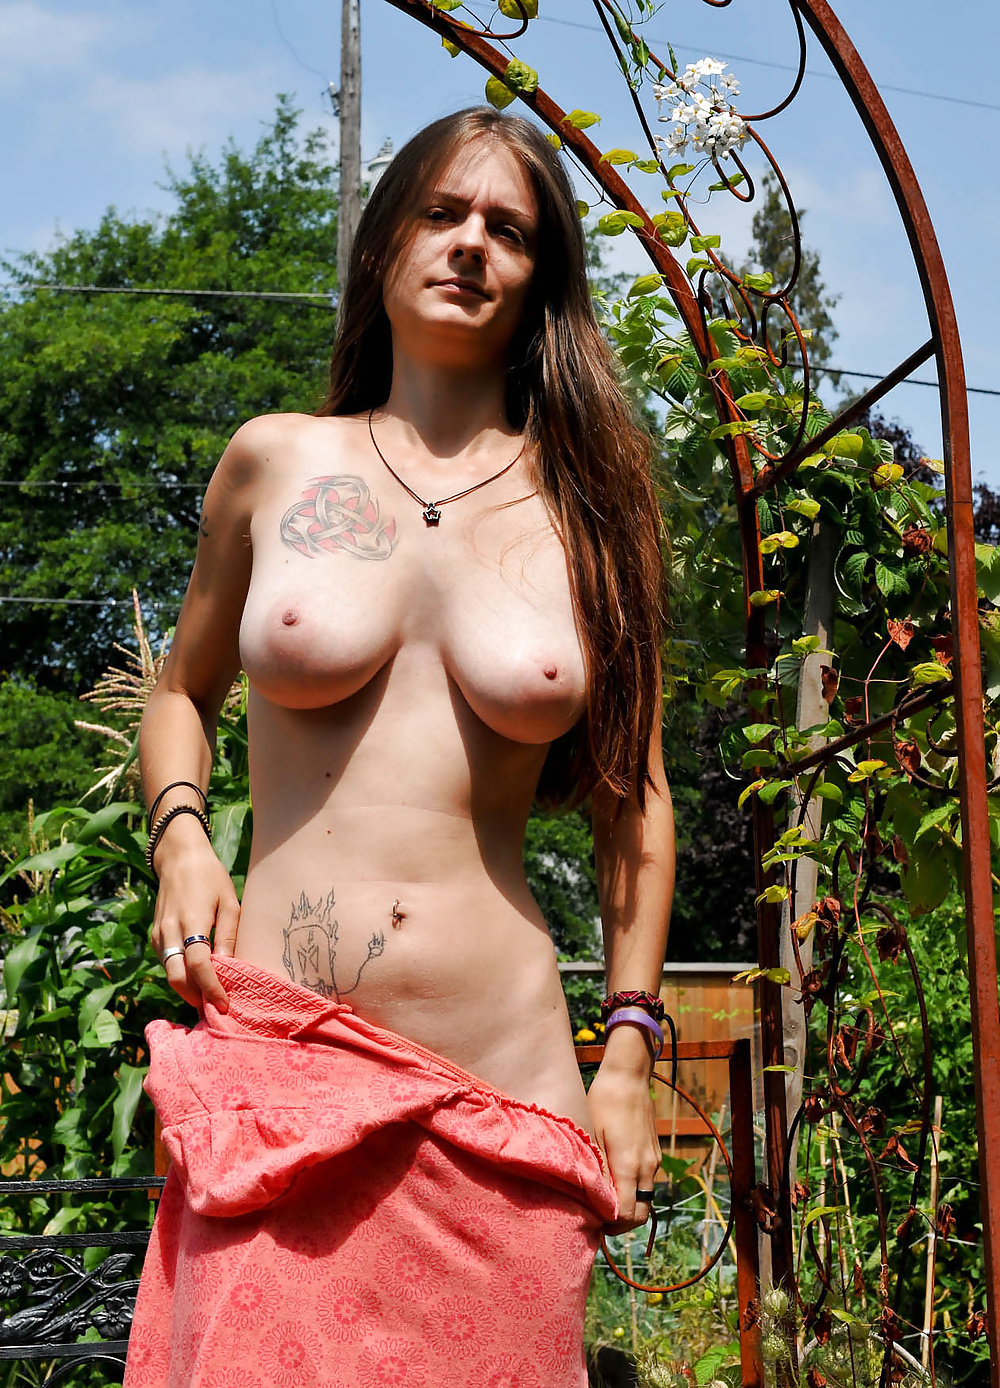 Hot hippie women nude #2